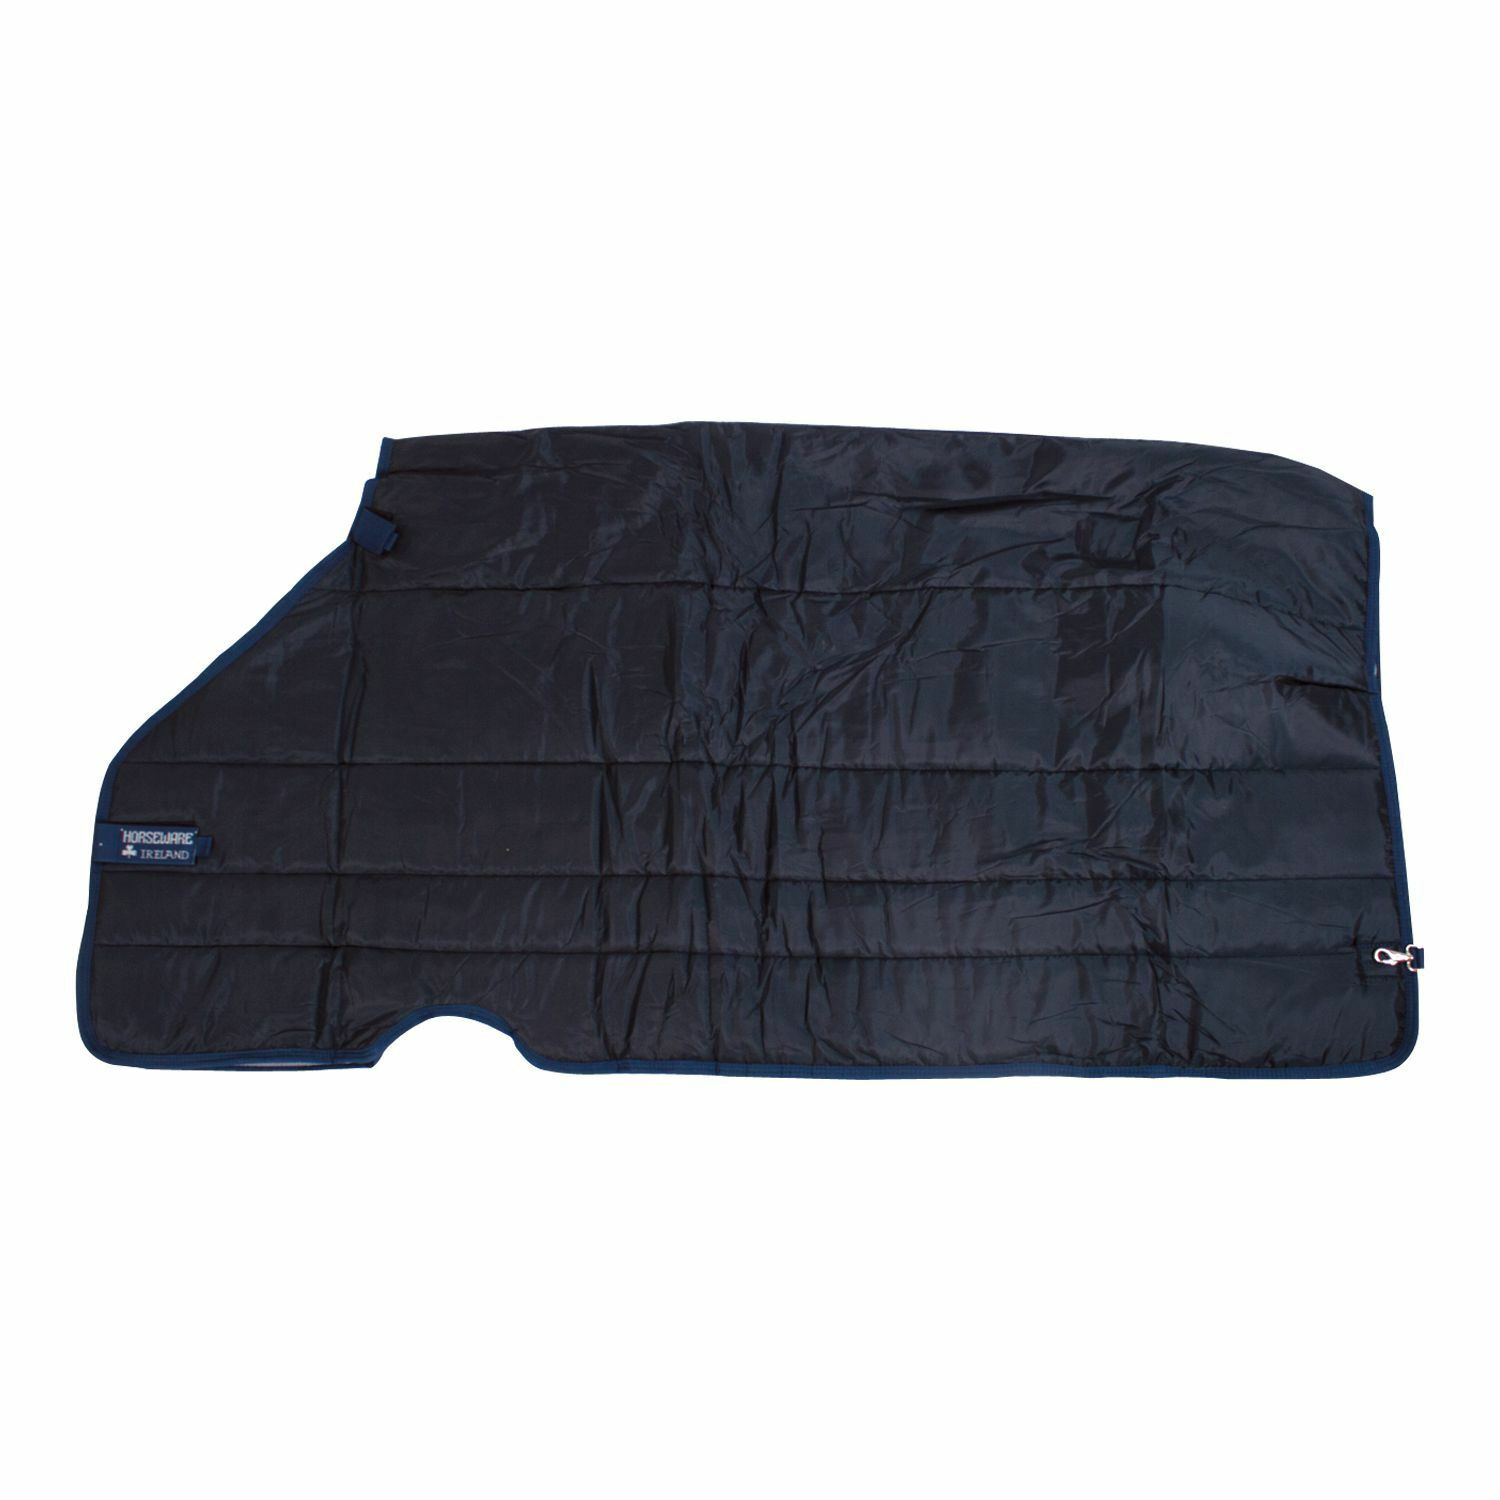 Horseware Rambo sous couverture Duo 100 Liners, liner Navy 100 Duo 200 300 400 g 125-165 cm 81ea3a